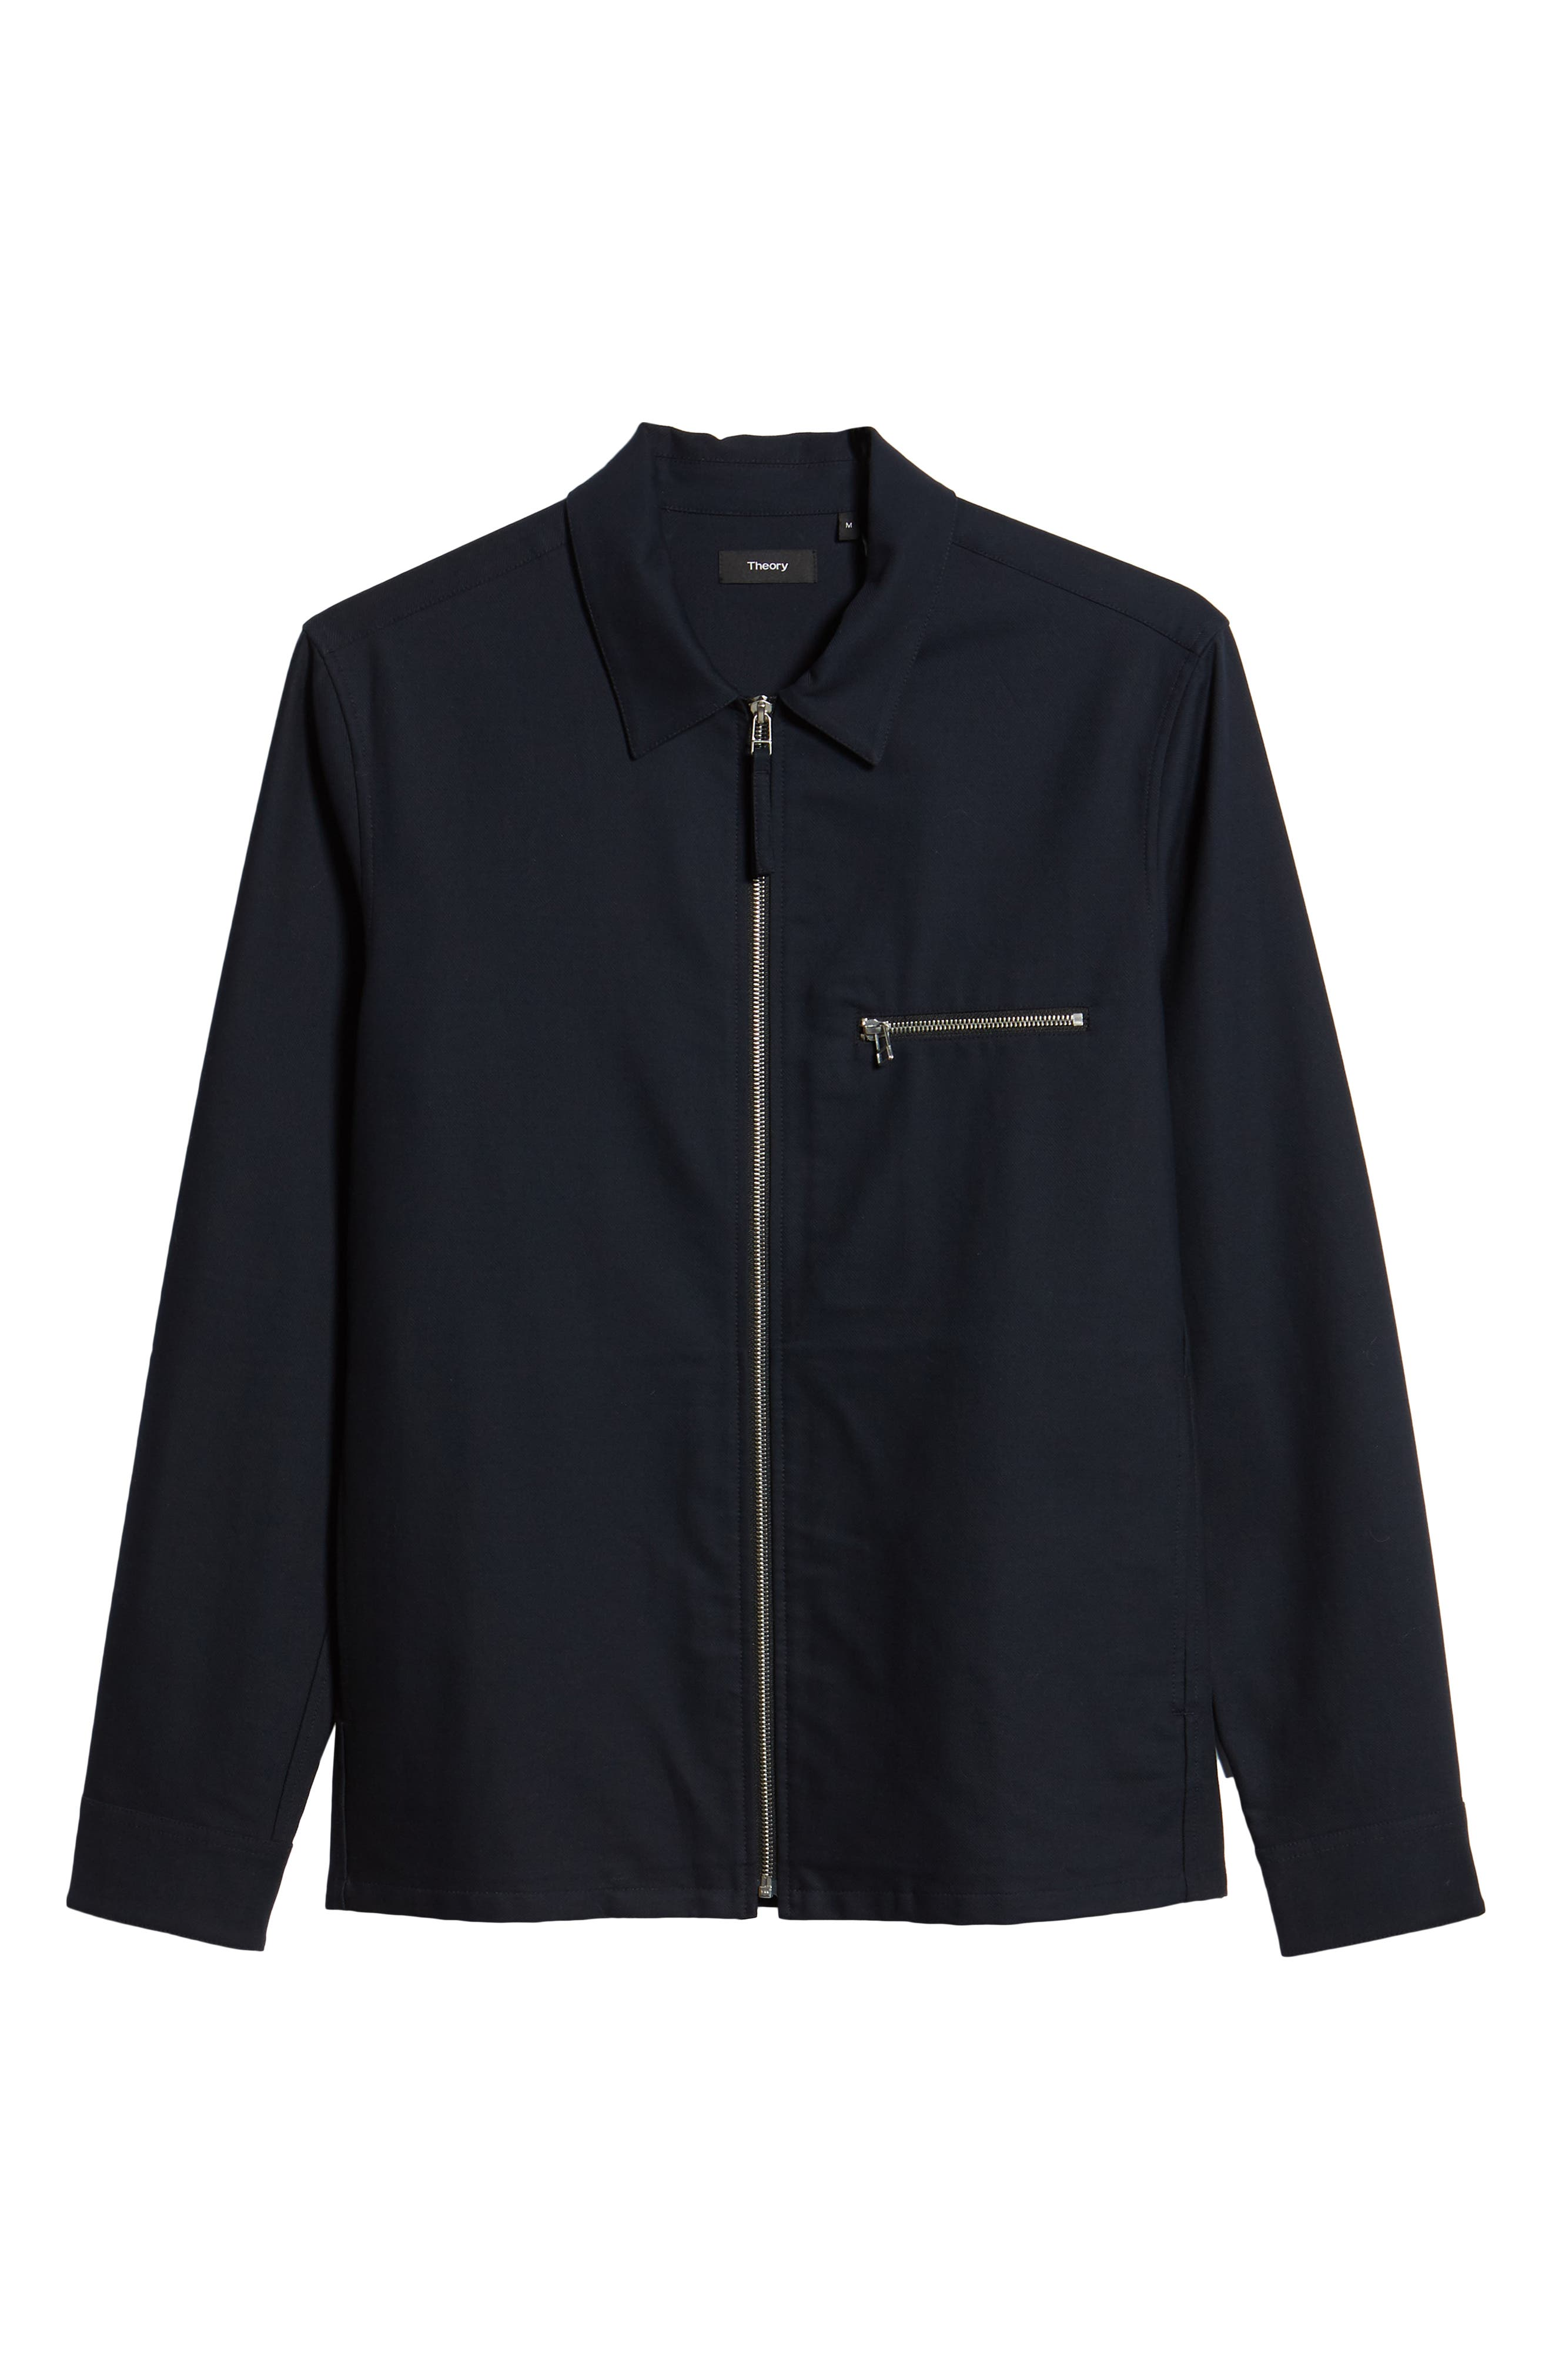 THEORY,                             Rye Stretch Cotton Jacket,                             Alternate thumbnail 5, color,                             497